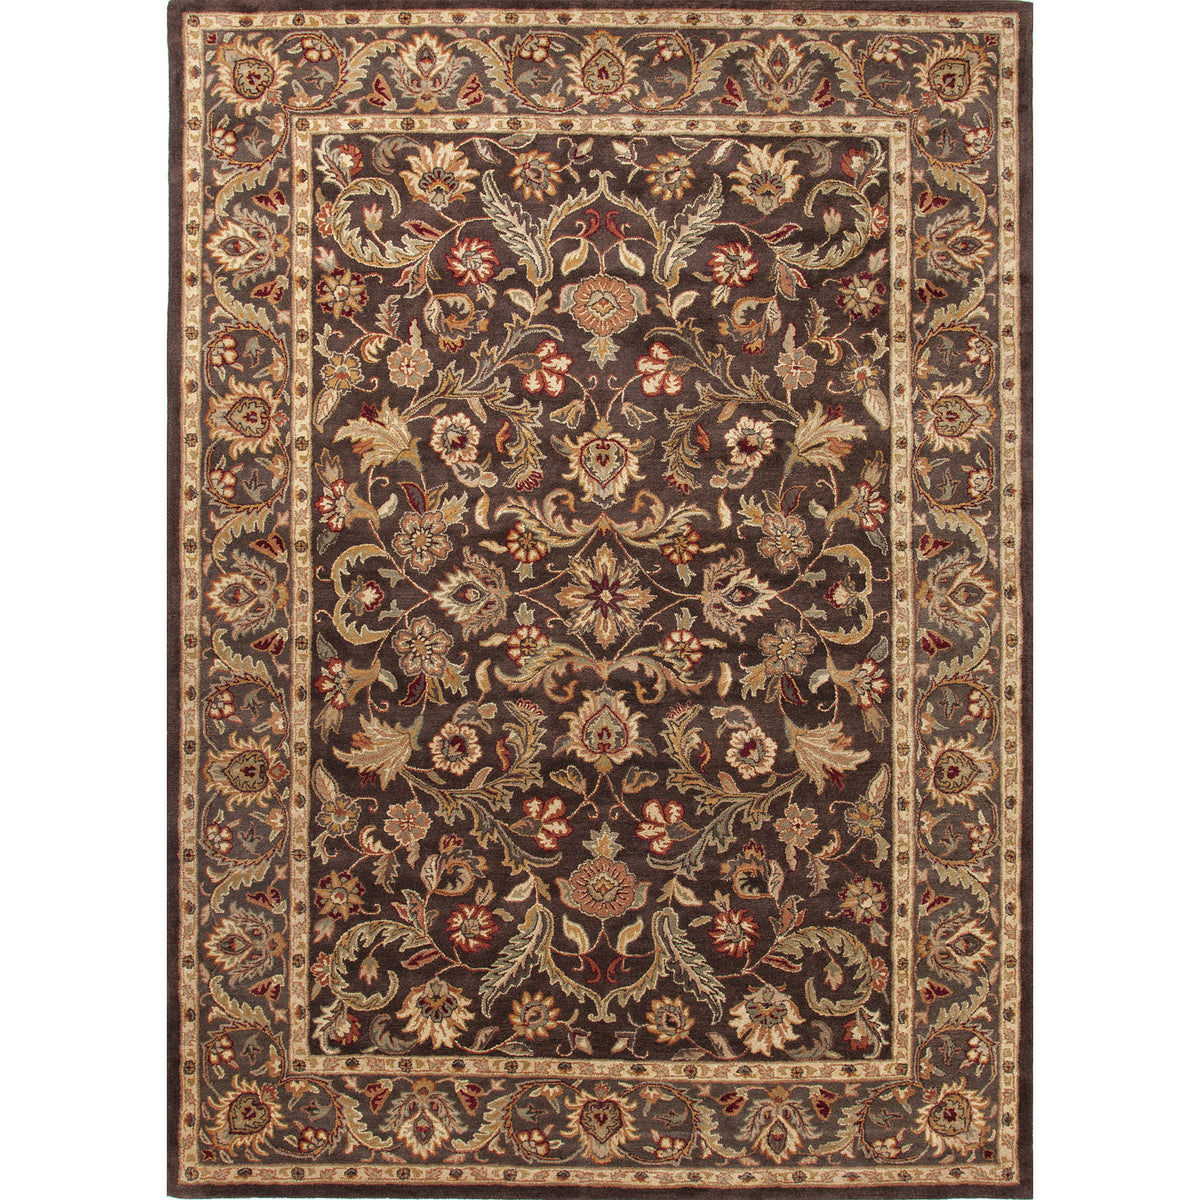 Jaipur Rugs Classic Oriental Pattern Brown/Taupe Wool Area